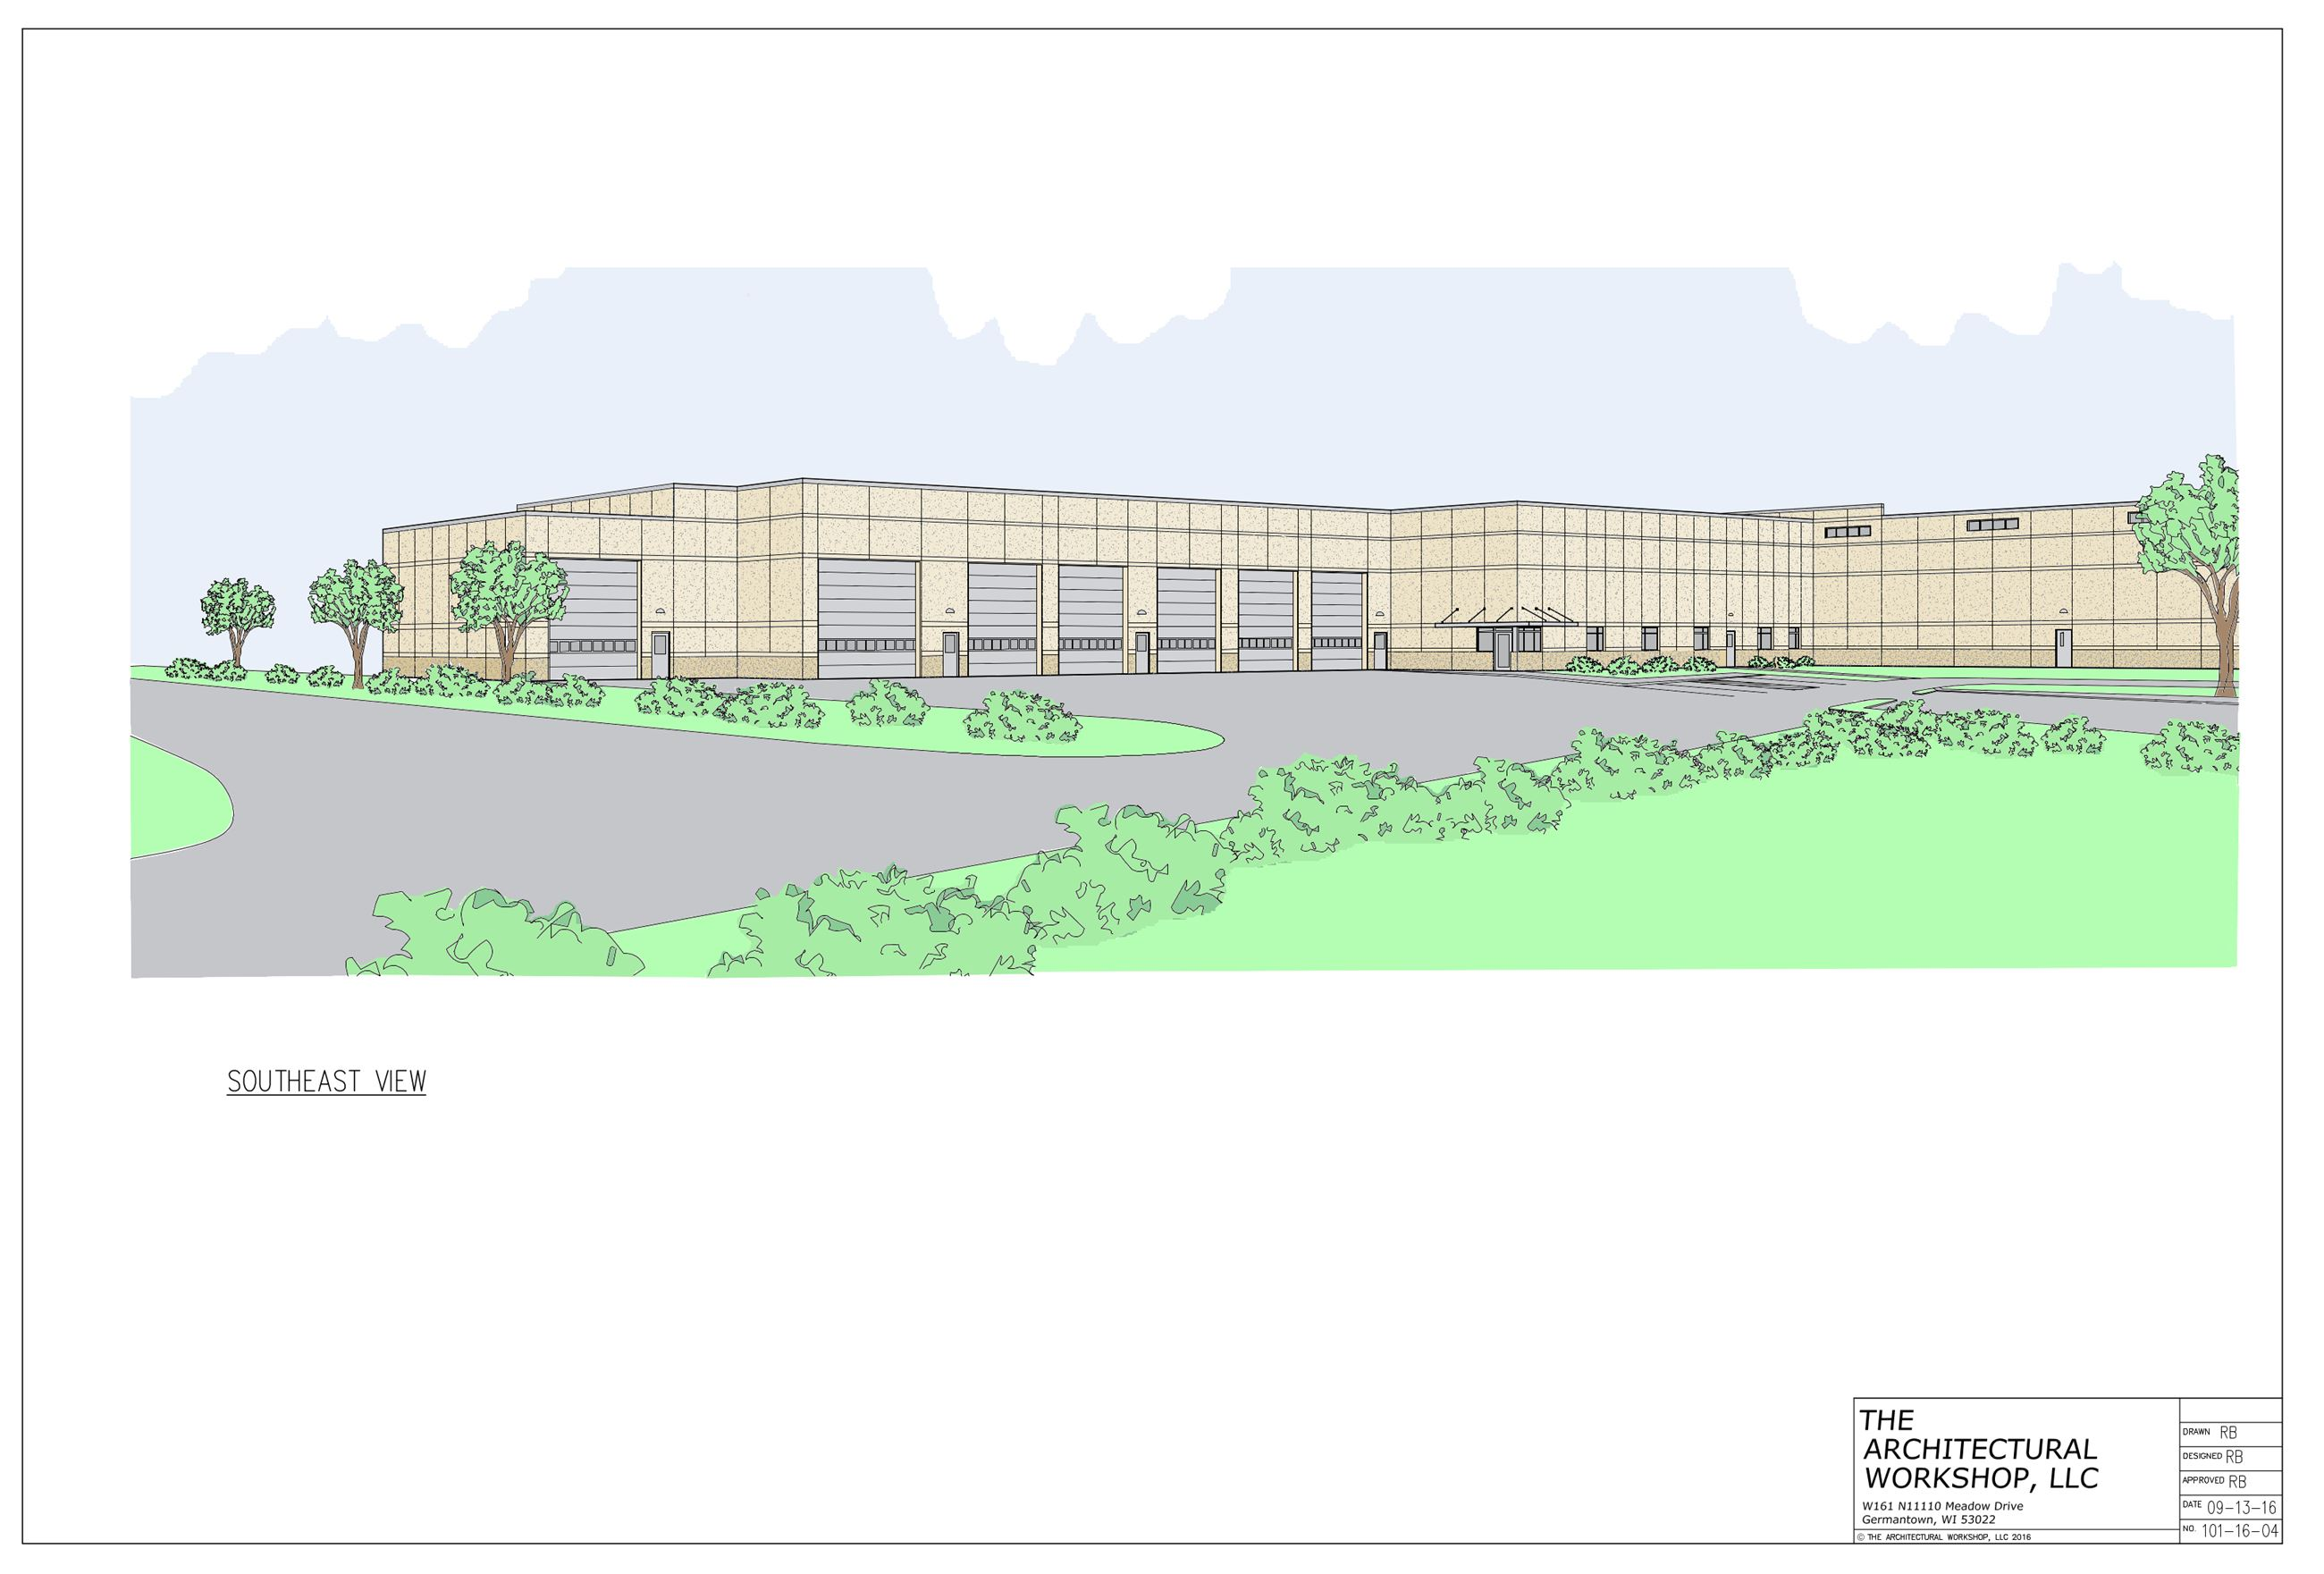 Public Works Facility Rendering